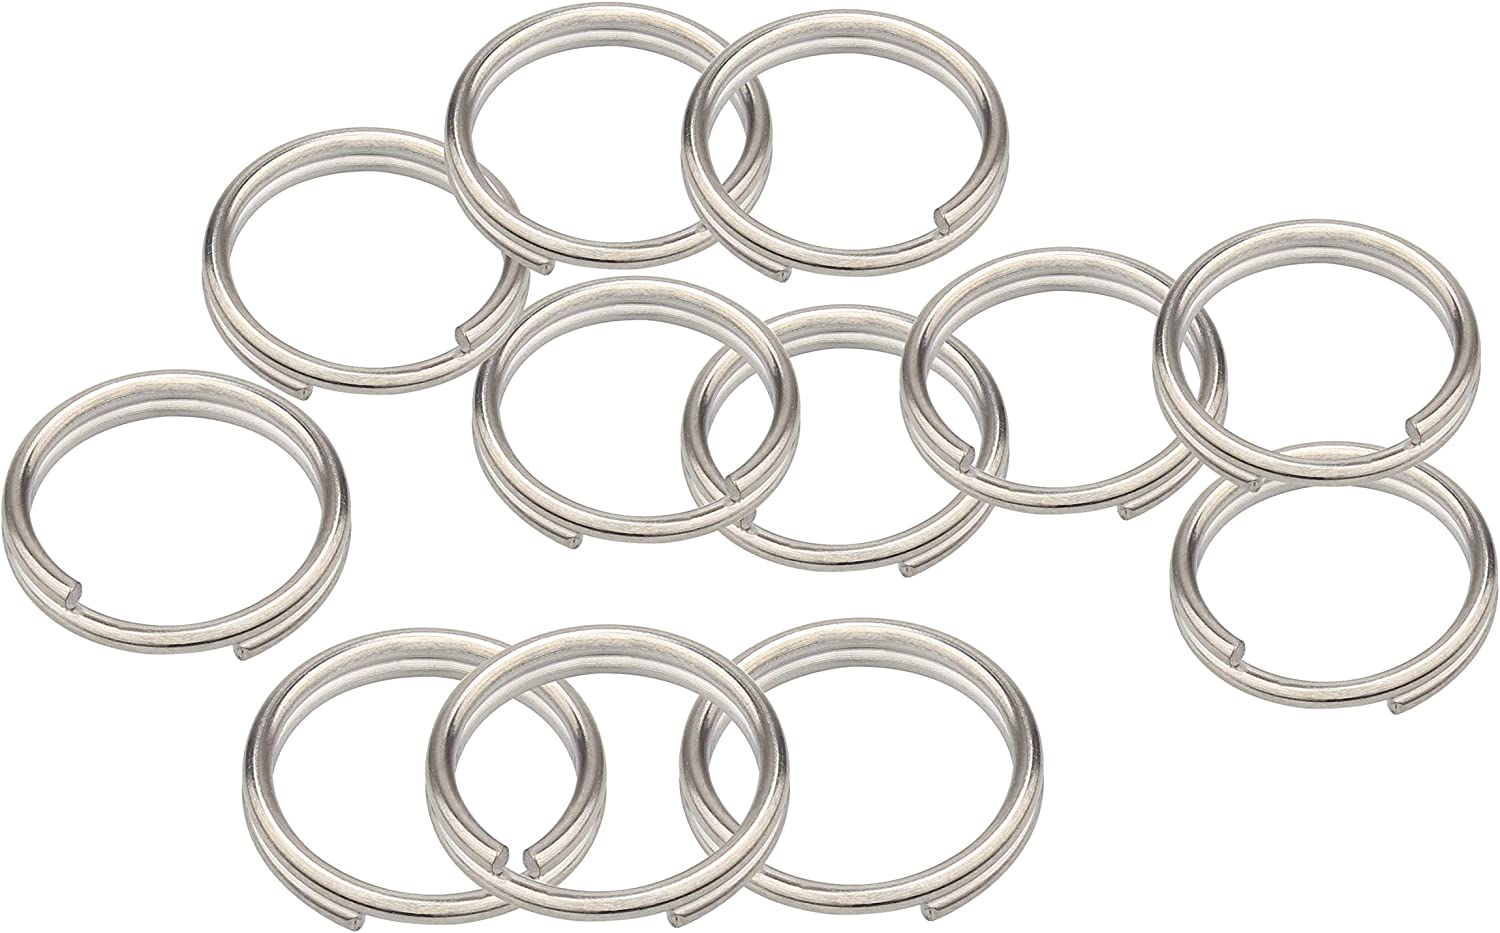 4 mm Bending Rings 100 Piece Open Jump Ring Spring Ring Connection Ring